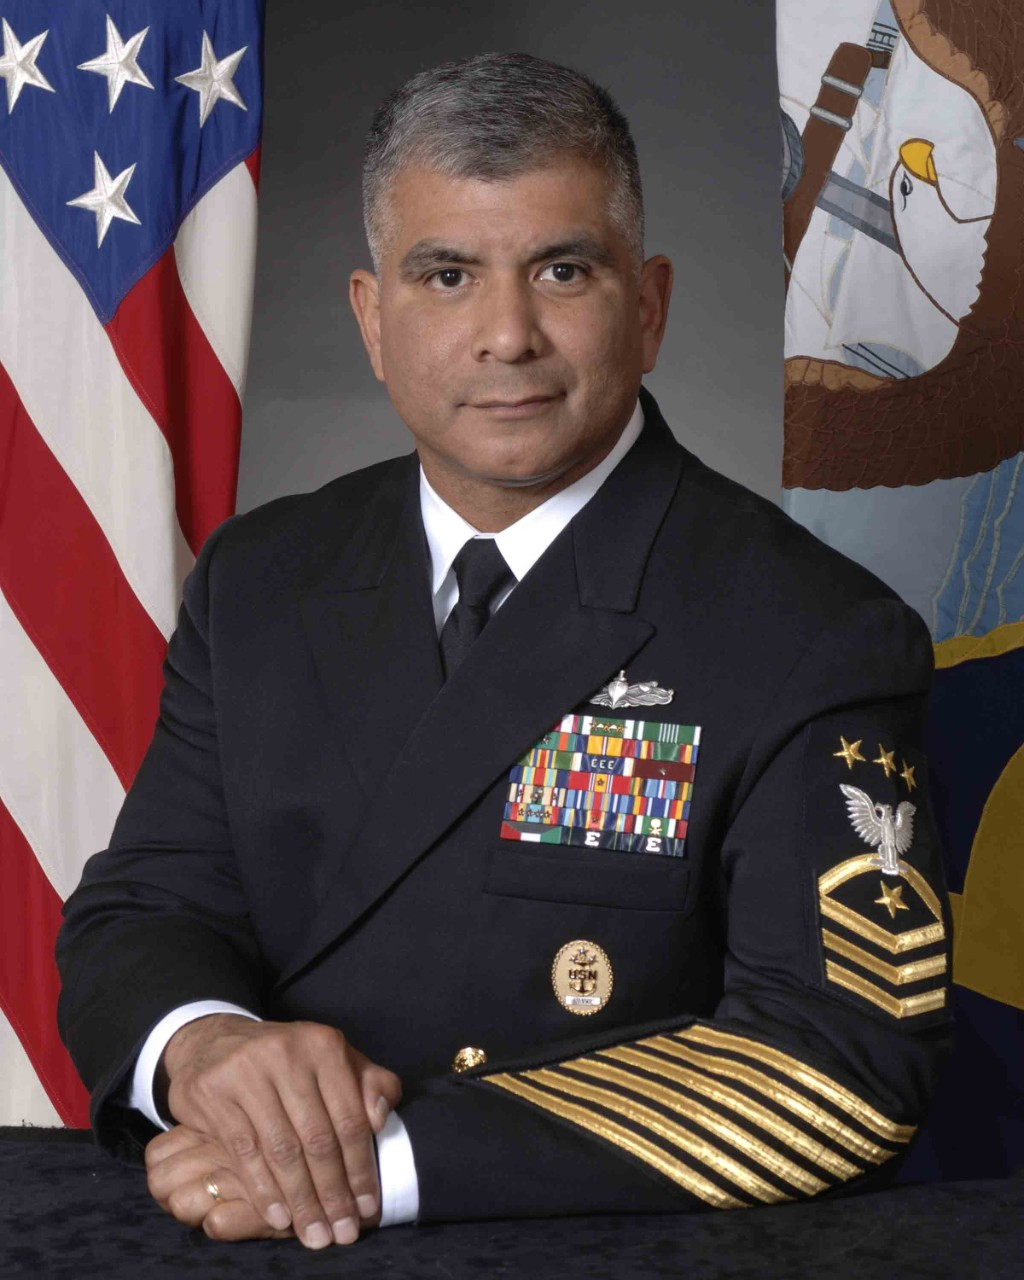 MCPON Joe Campa thumbnail